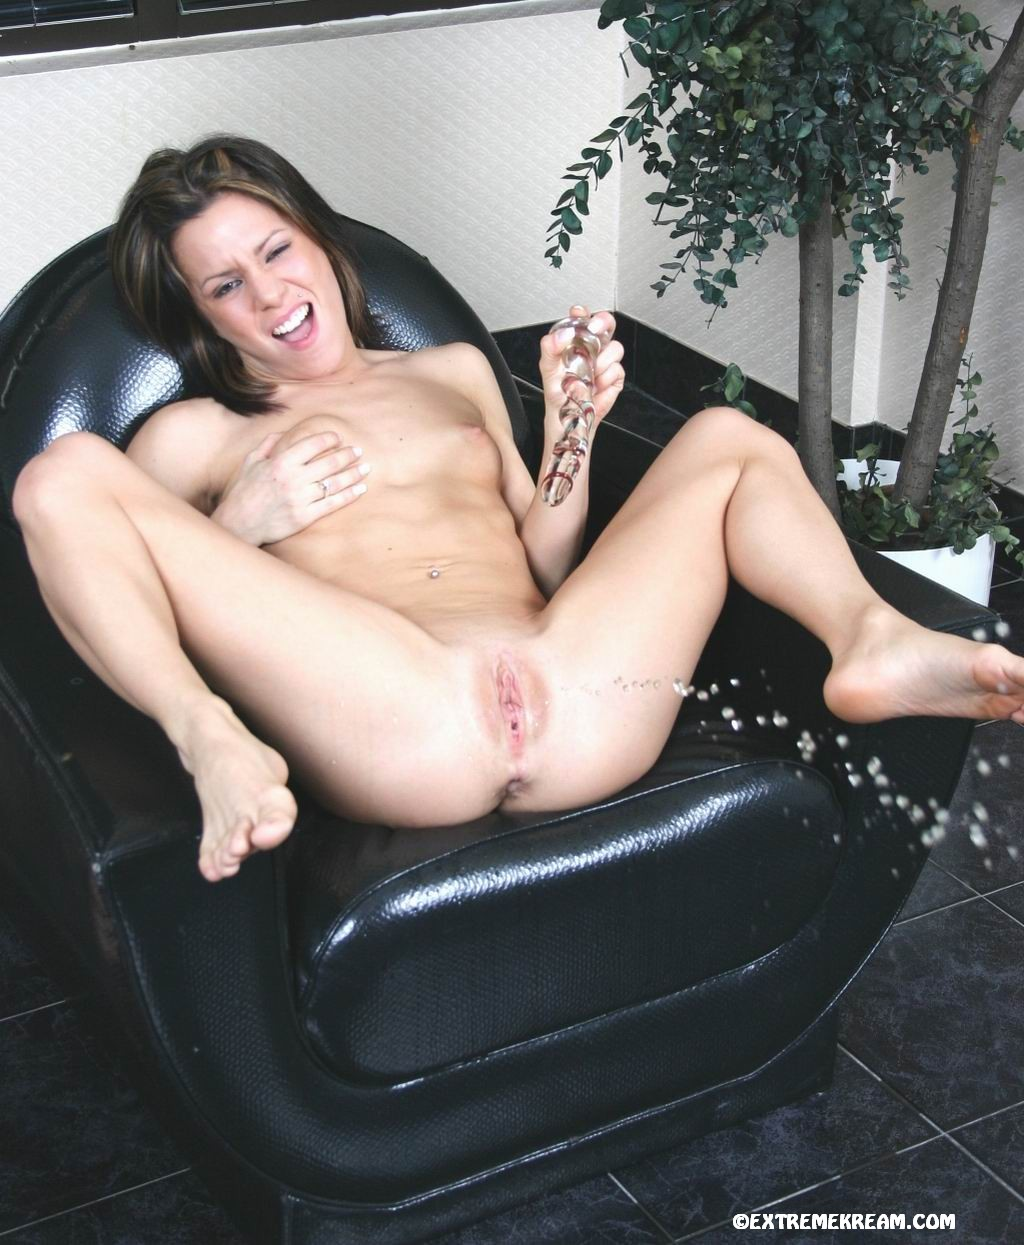 Hottest Babe Kream Insert Huge Glass Dildo In Her Cunt In Many